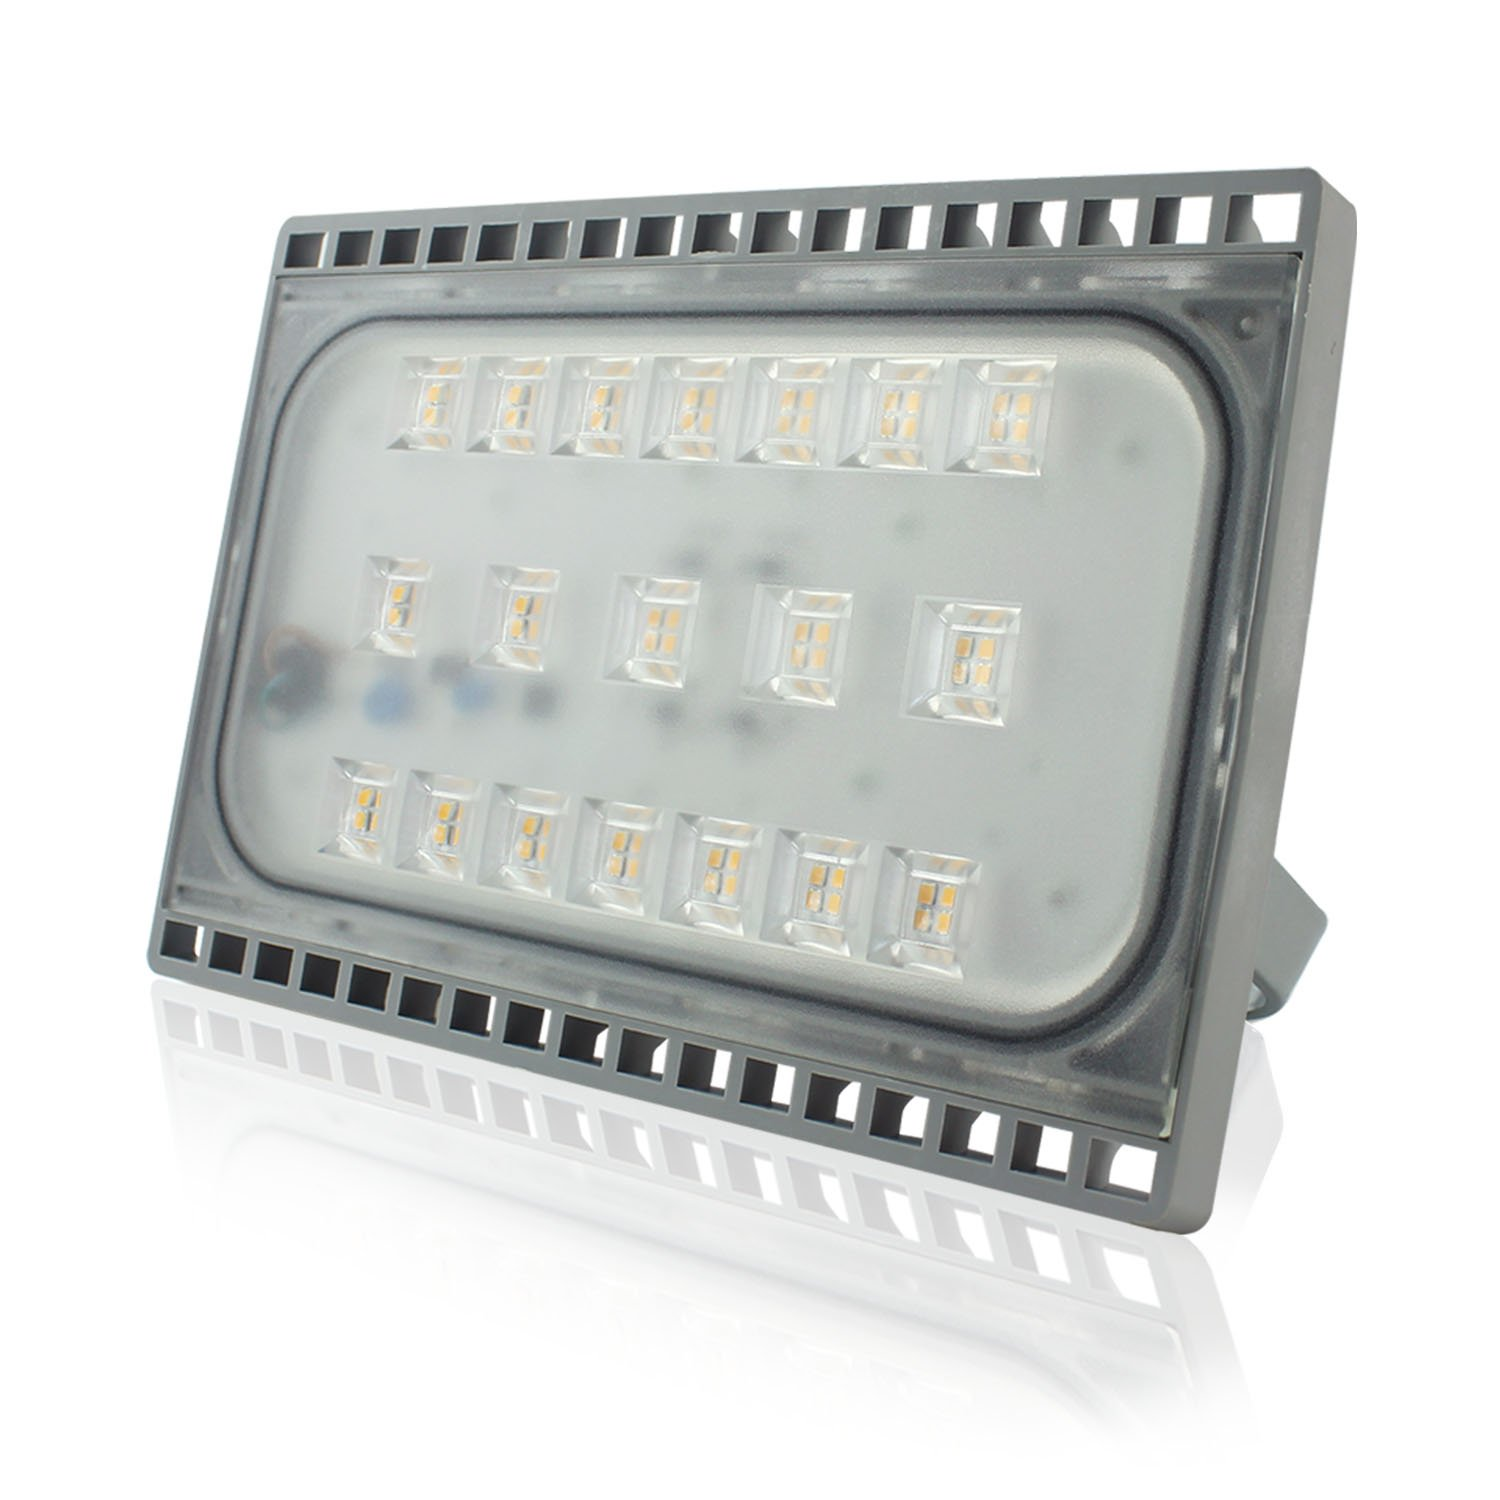 Indoor and Outdoor Floodlight IP65 Waterproof Warm White LED Security Lights 3000K PMS Ultra Slim 50W LED Flood Lights